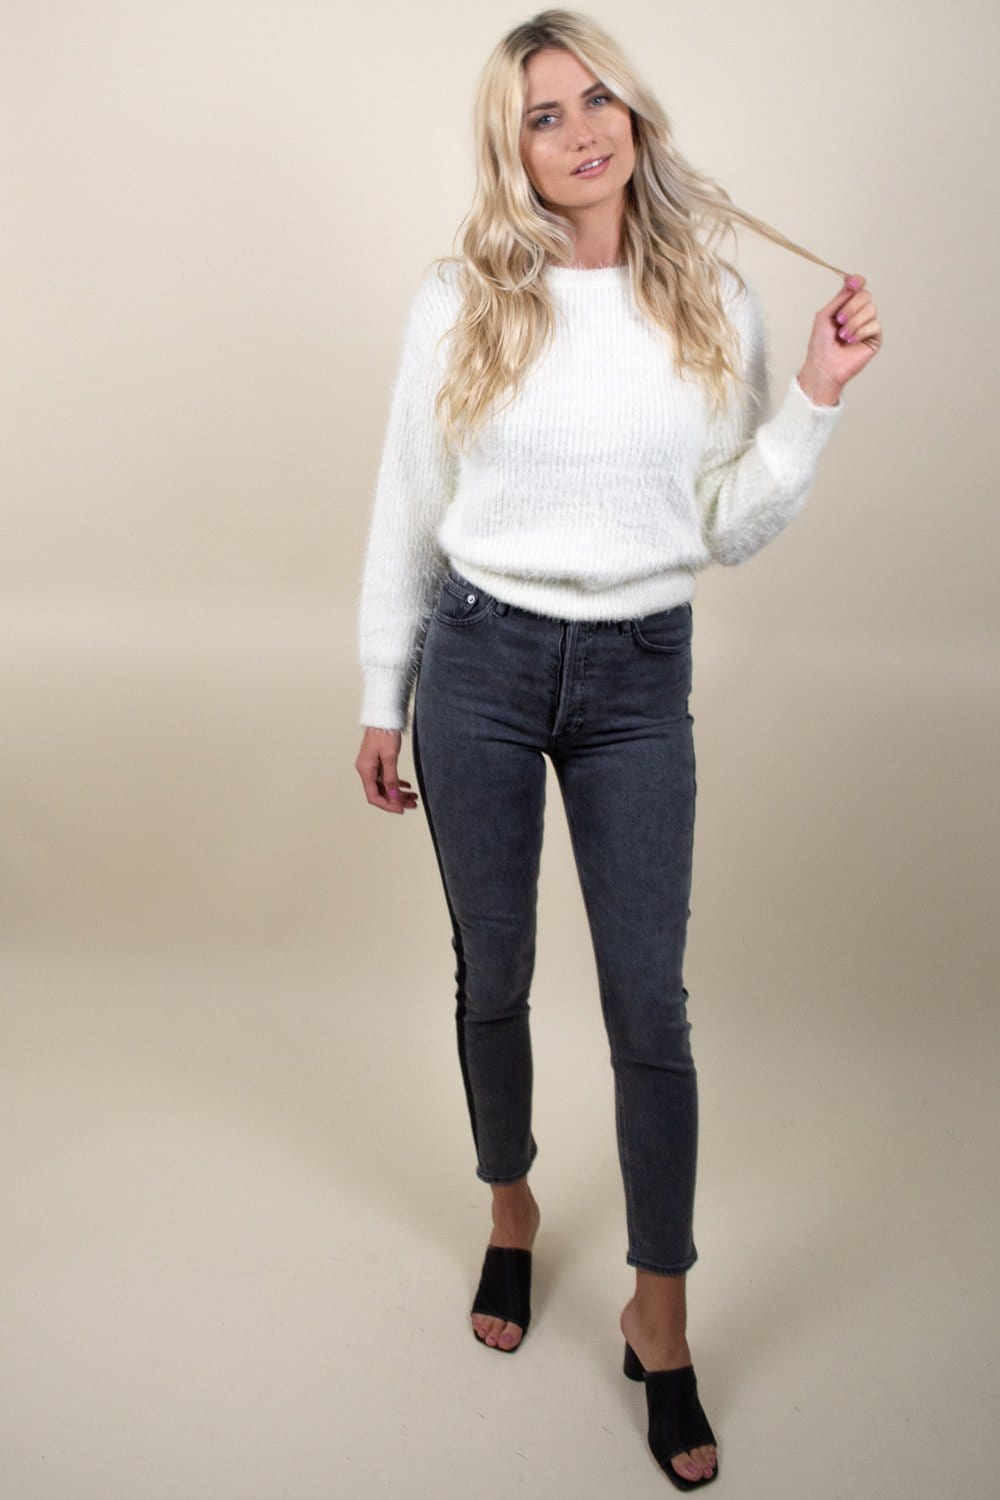 J.O.A Embellished Sweater | Wild Dove Boutique | San Diego,CA